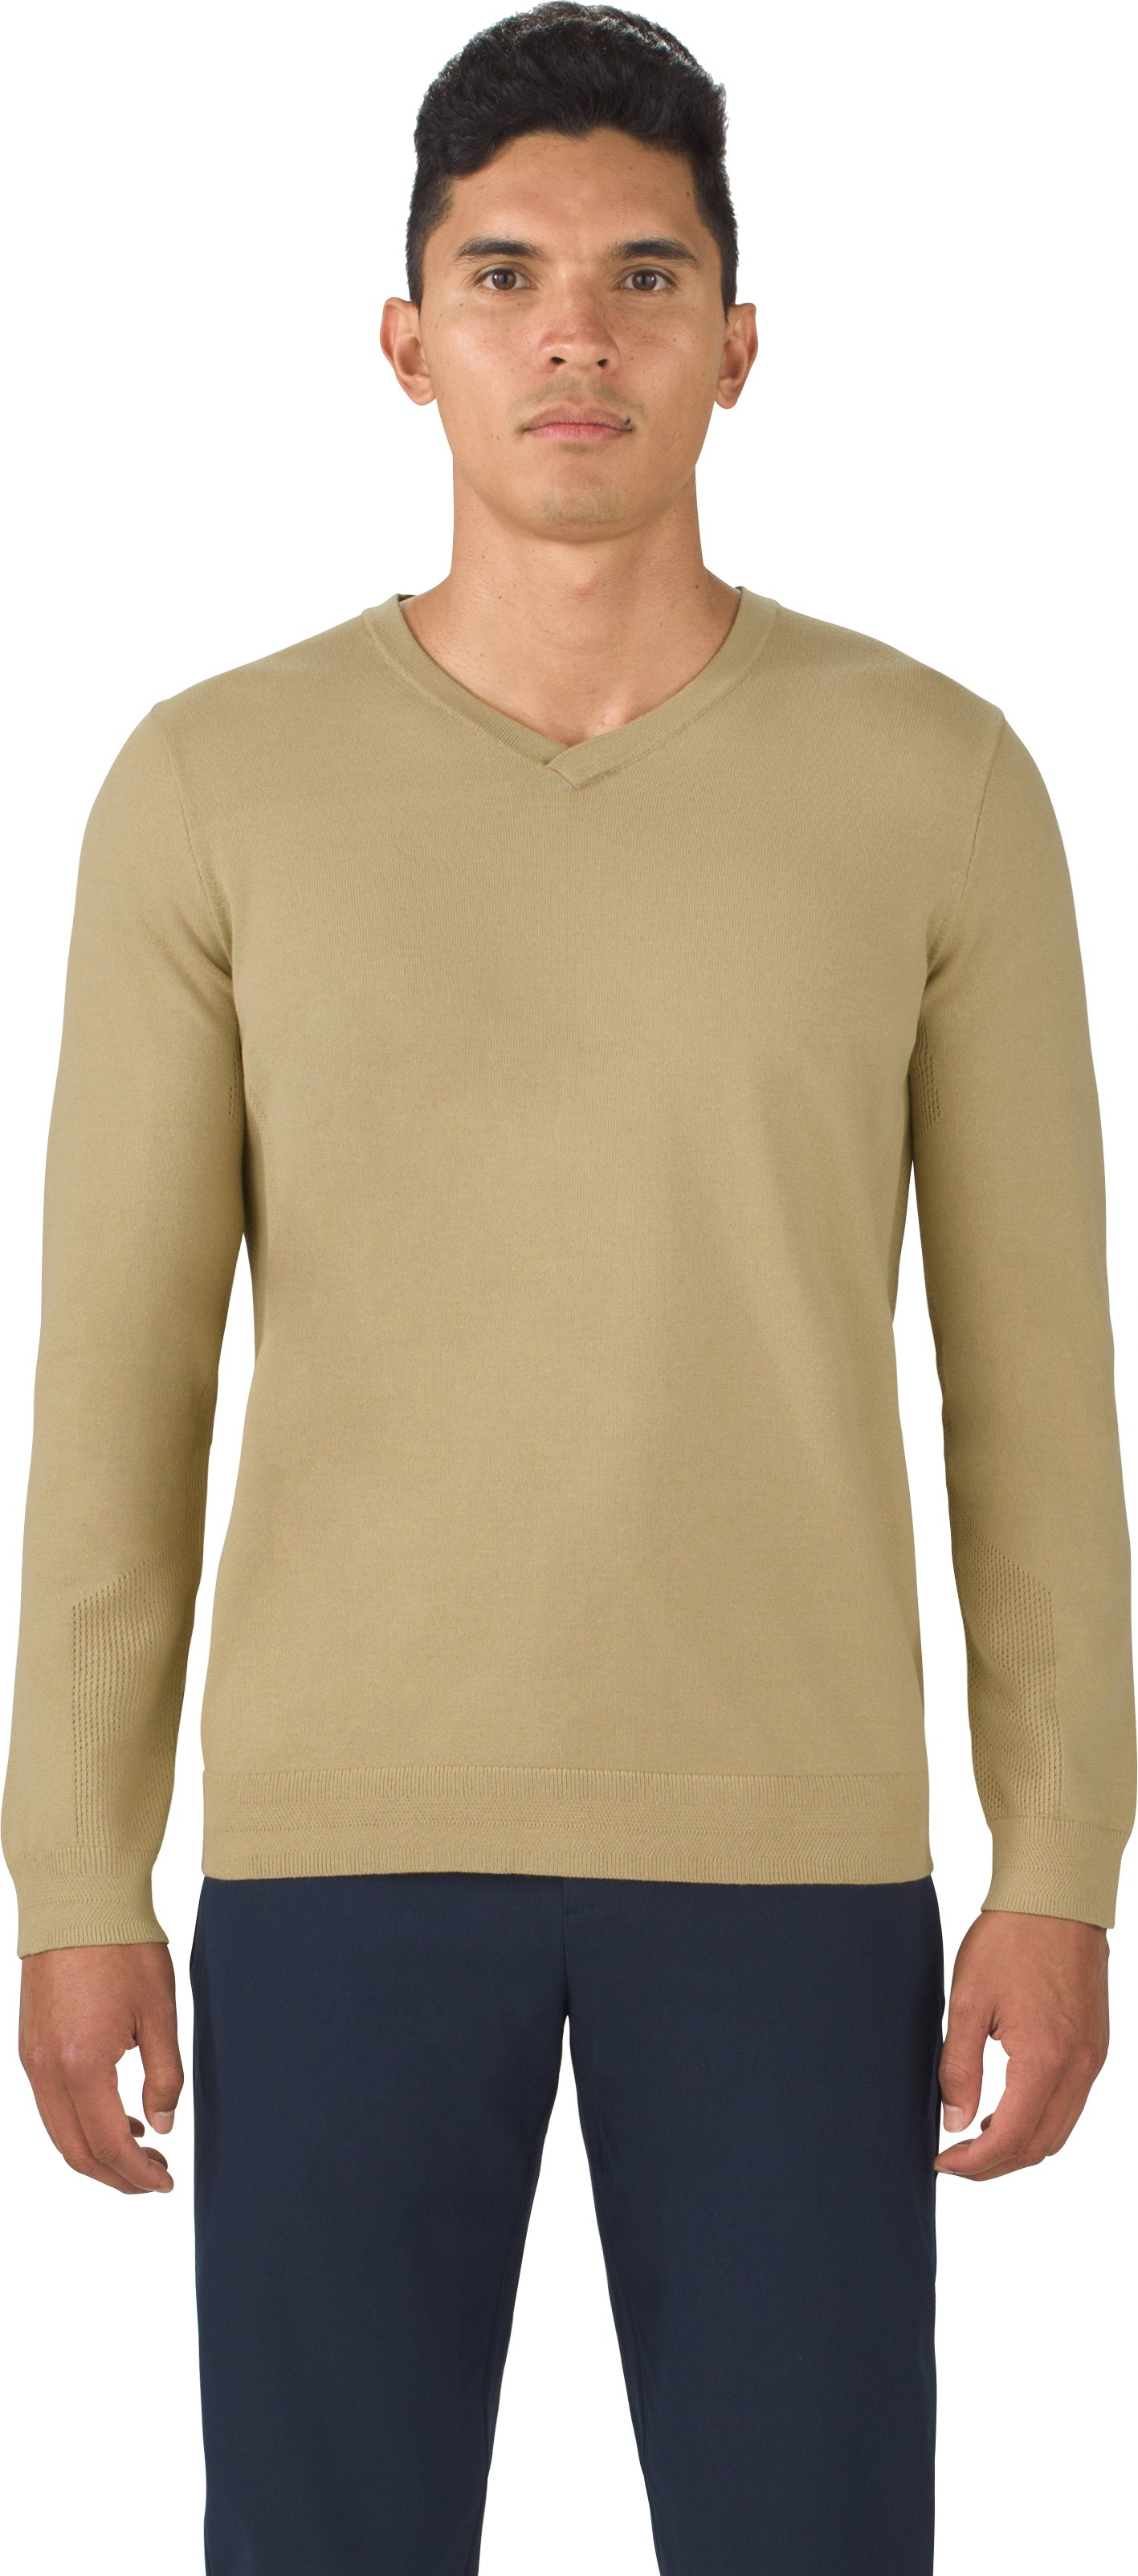 Men's UAS Engineered Knit Sweater, SAND